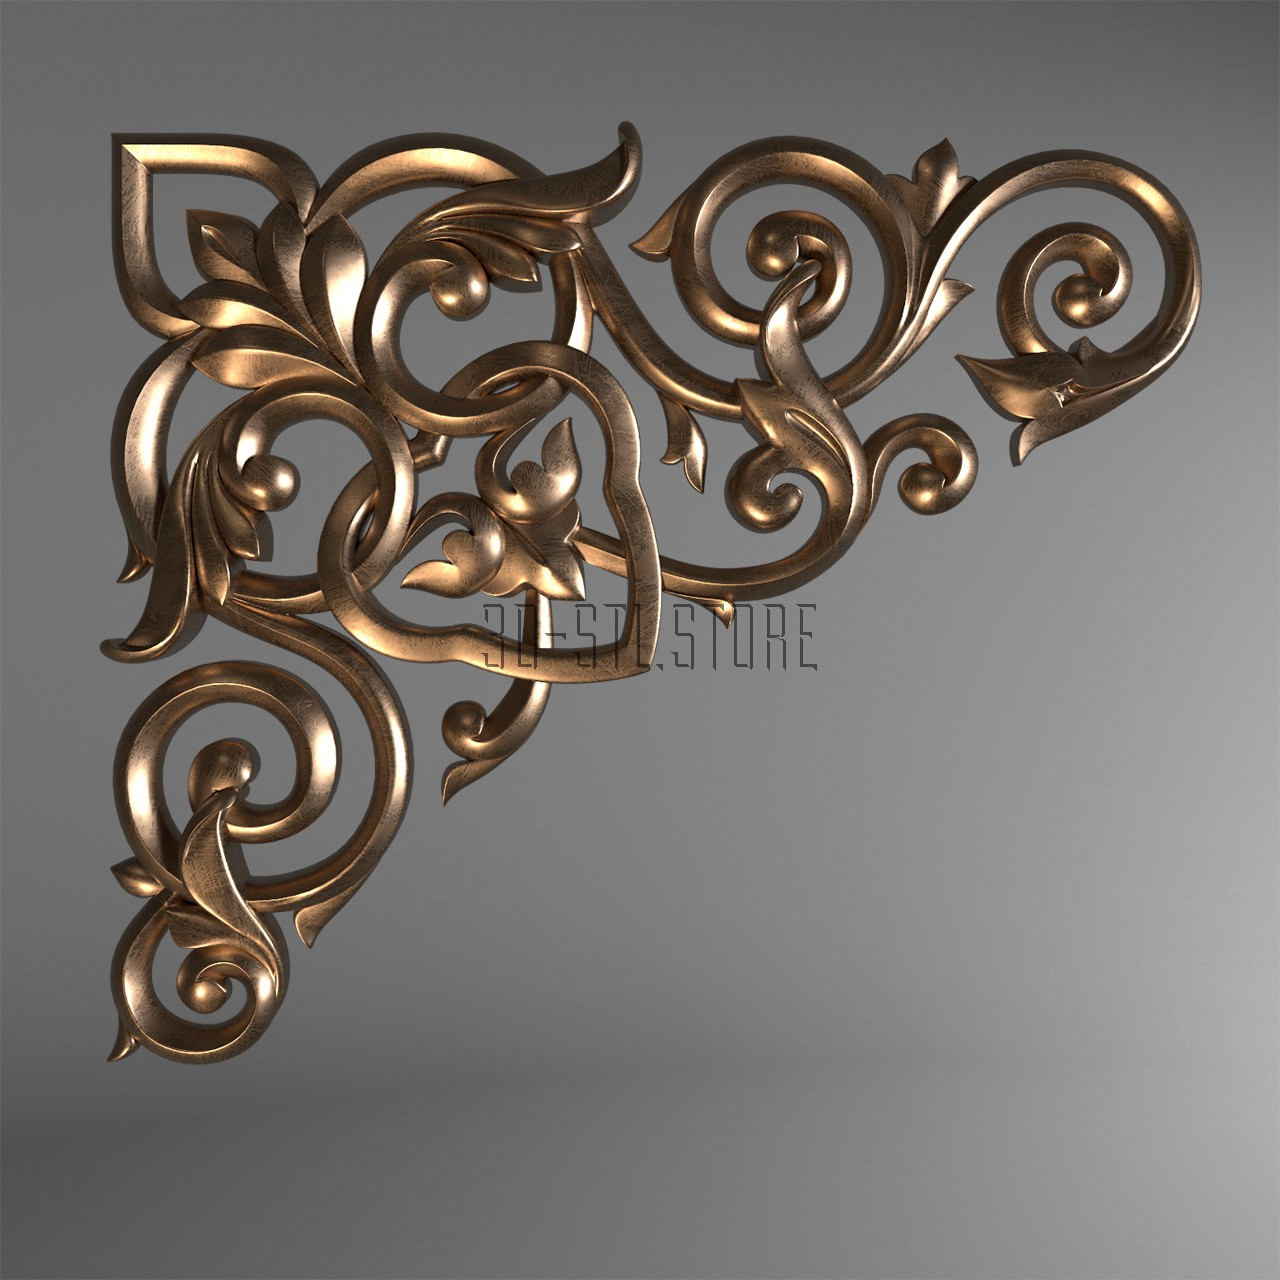 Decoration, 3d models (stl)